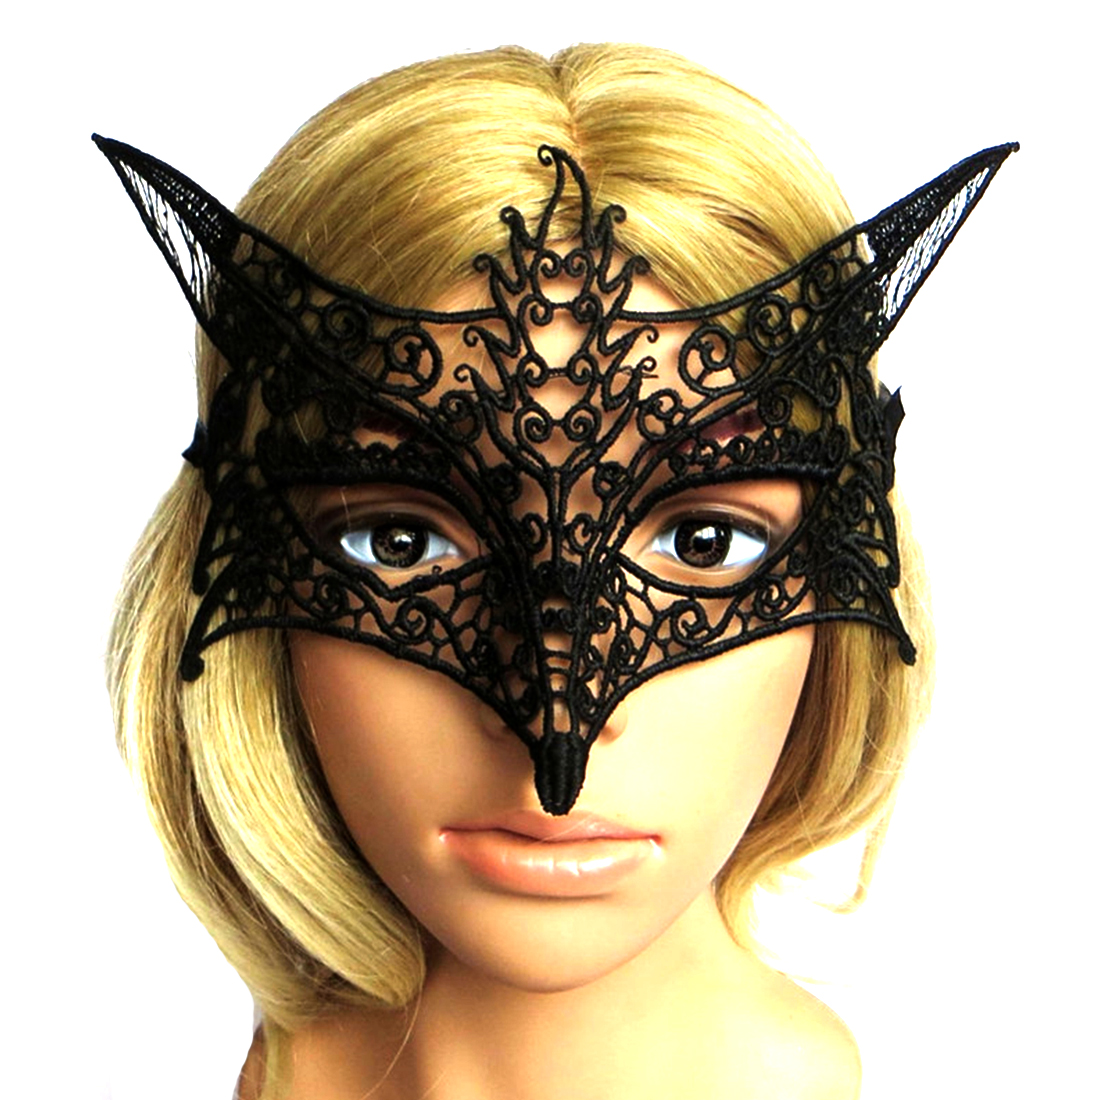 Compare Prices on Sexy Lace Mask- Online Shopping/Buy Low Price ...